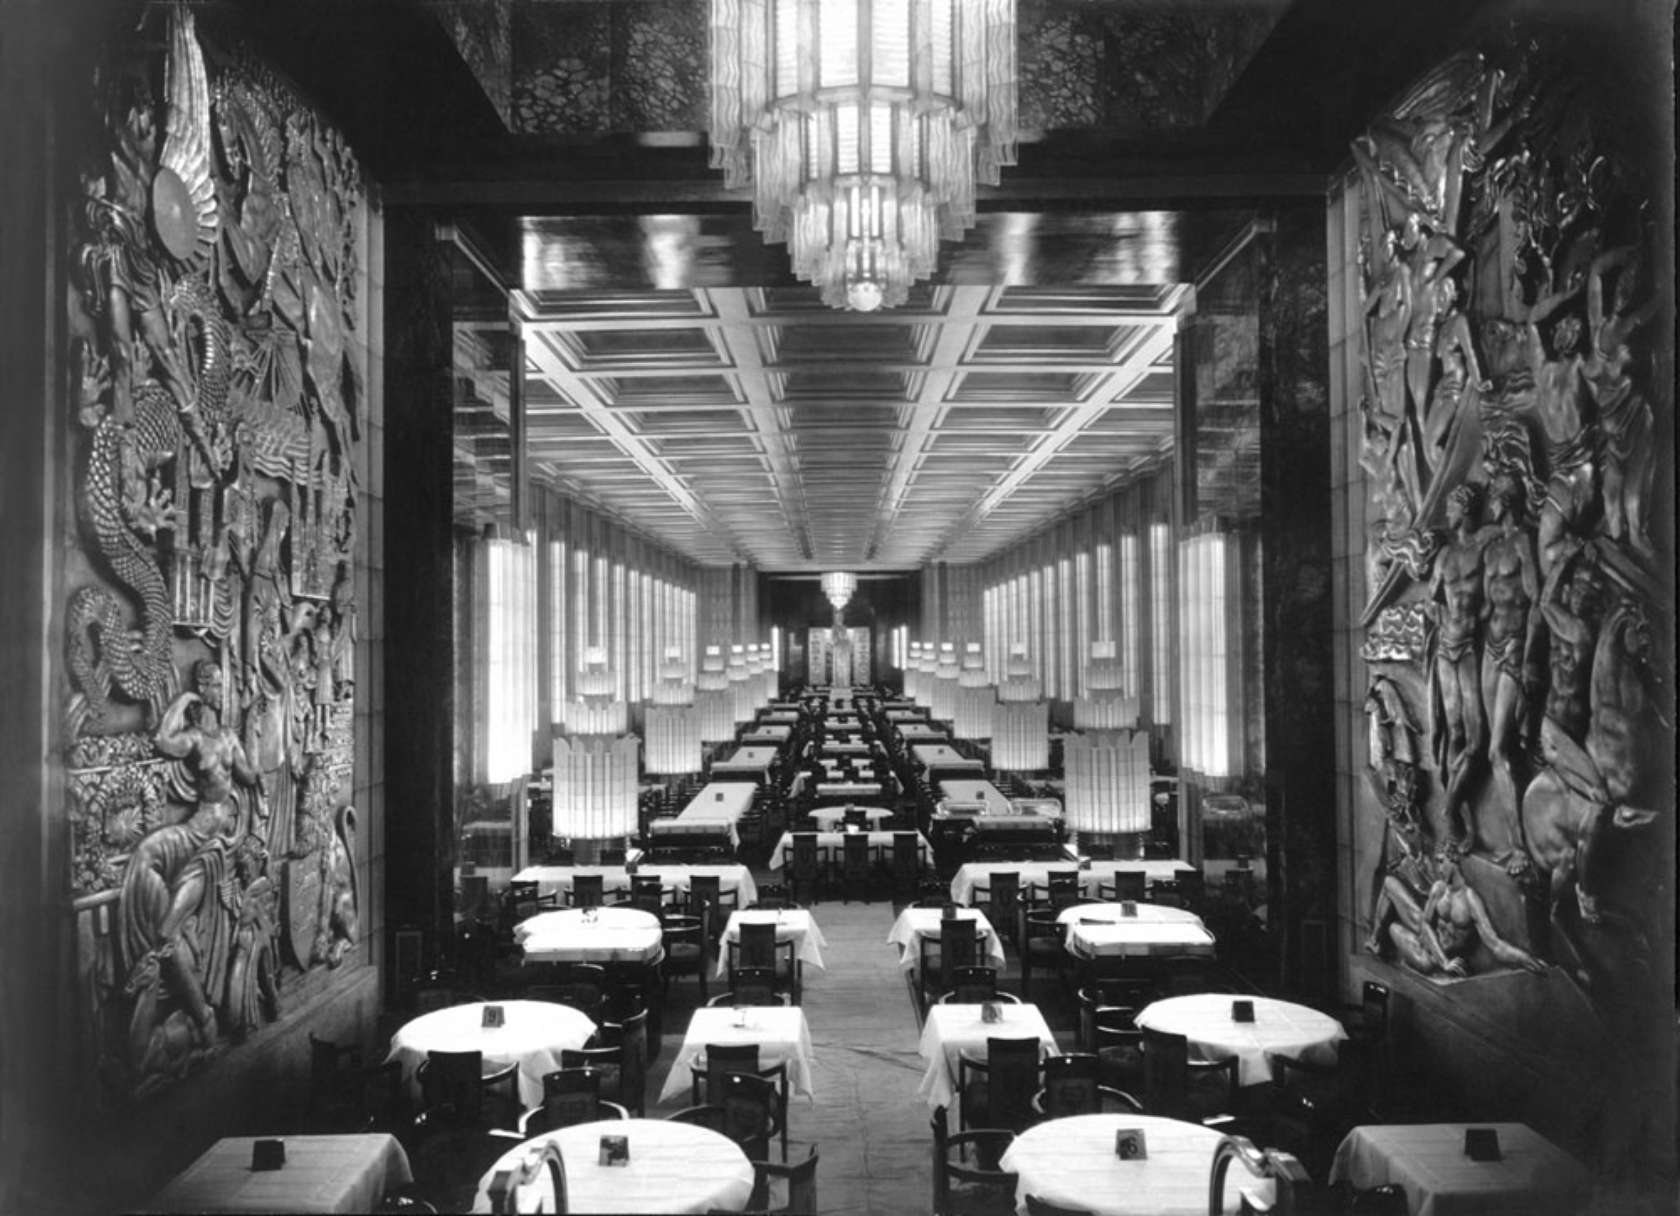 SS_Normandie_(ship,_1935)_interior.jpg